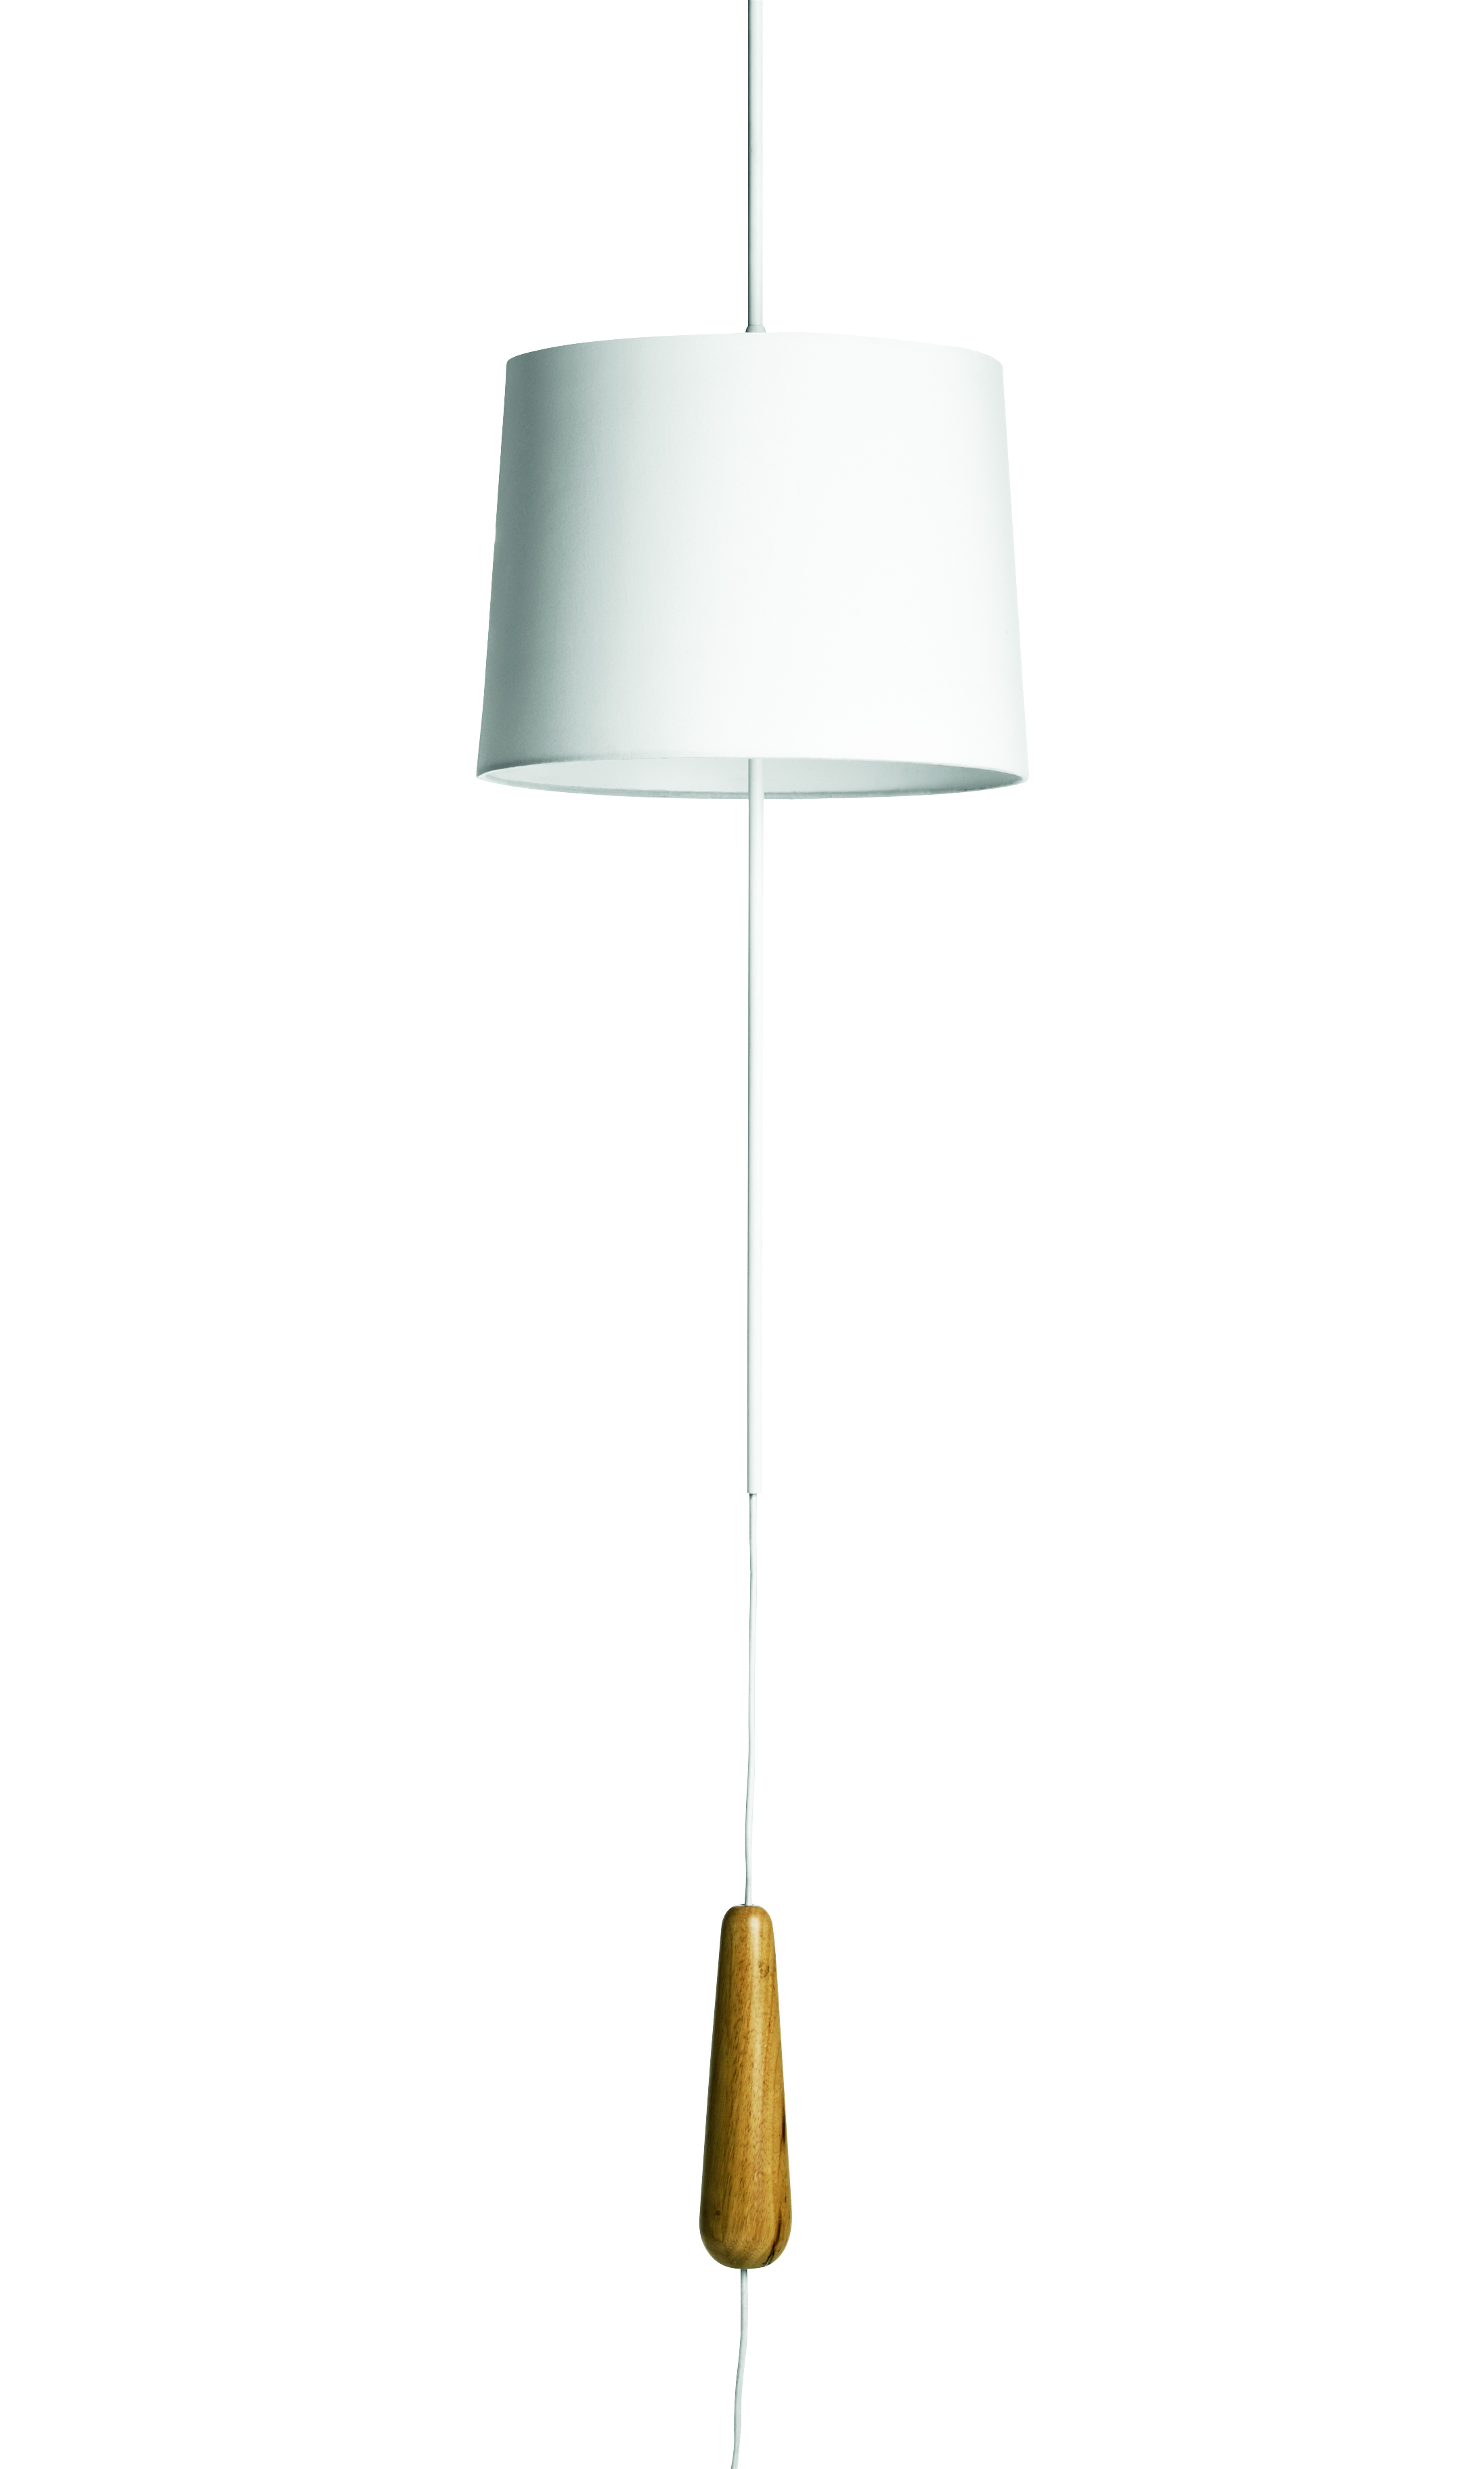 The Gravity Is Not Really A Pendant U2013 Even Though It Is Hanging From The  Ceiling. It Has A Mood Light, Which Is Suitable Next To The Sofa U2013 Maybe In  A ...